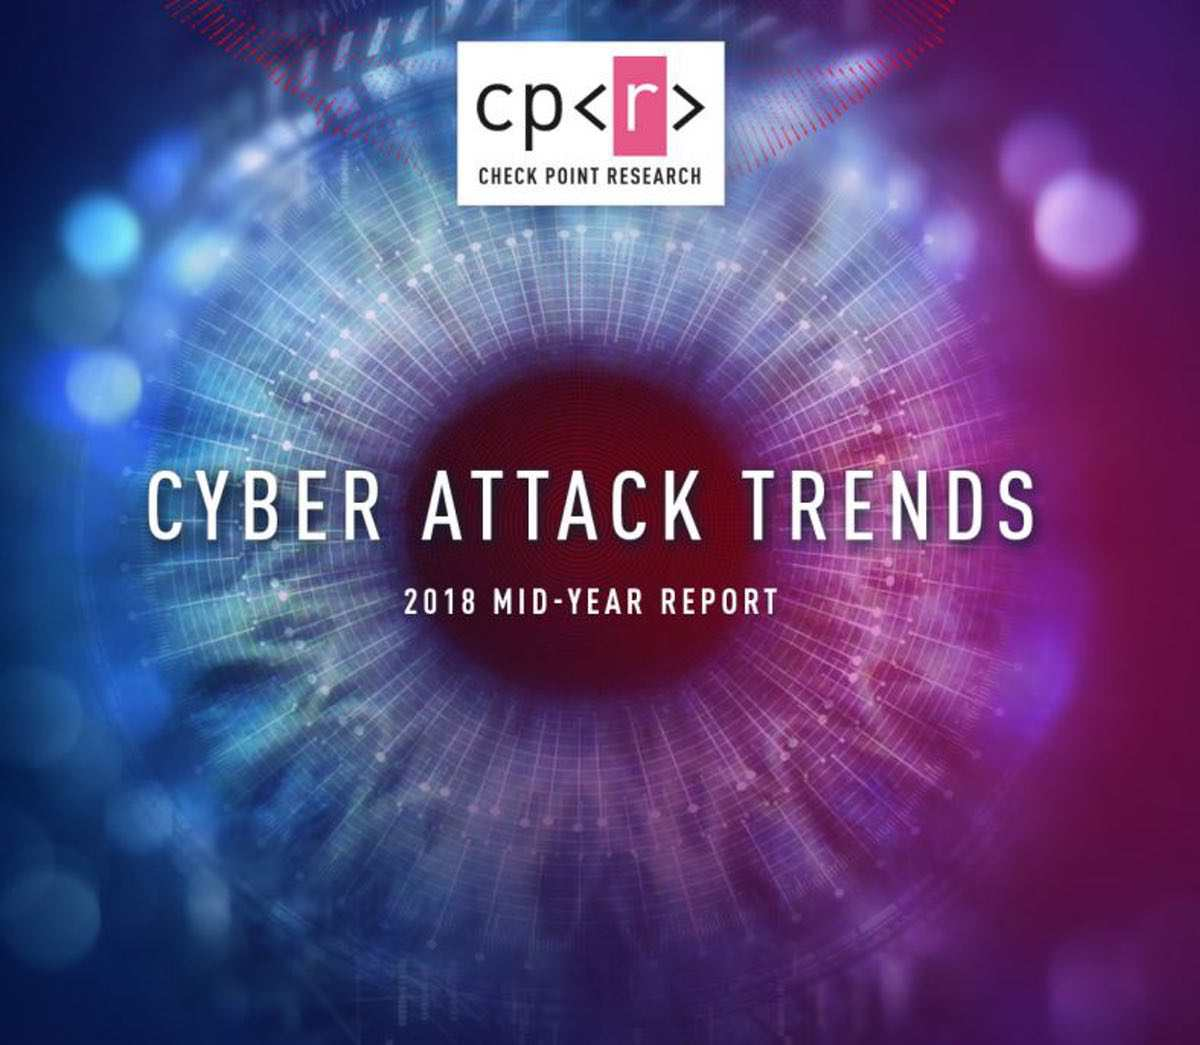 Check Point Cyber Attack Trends – Cryptominer auf dem Vormarsch